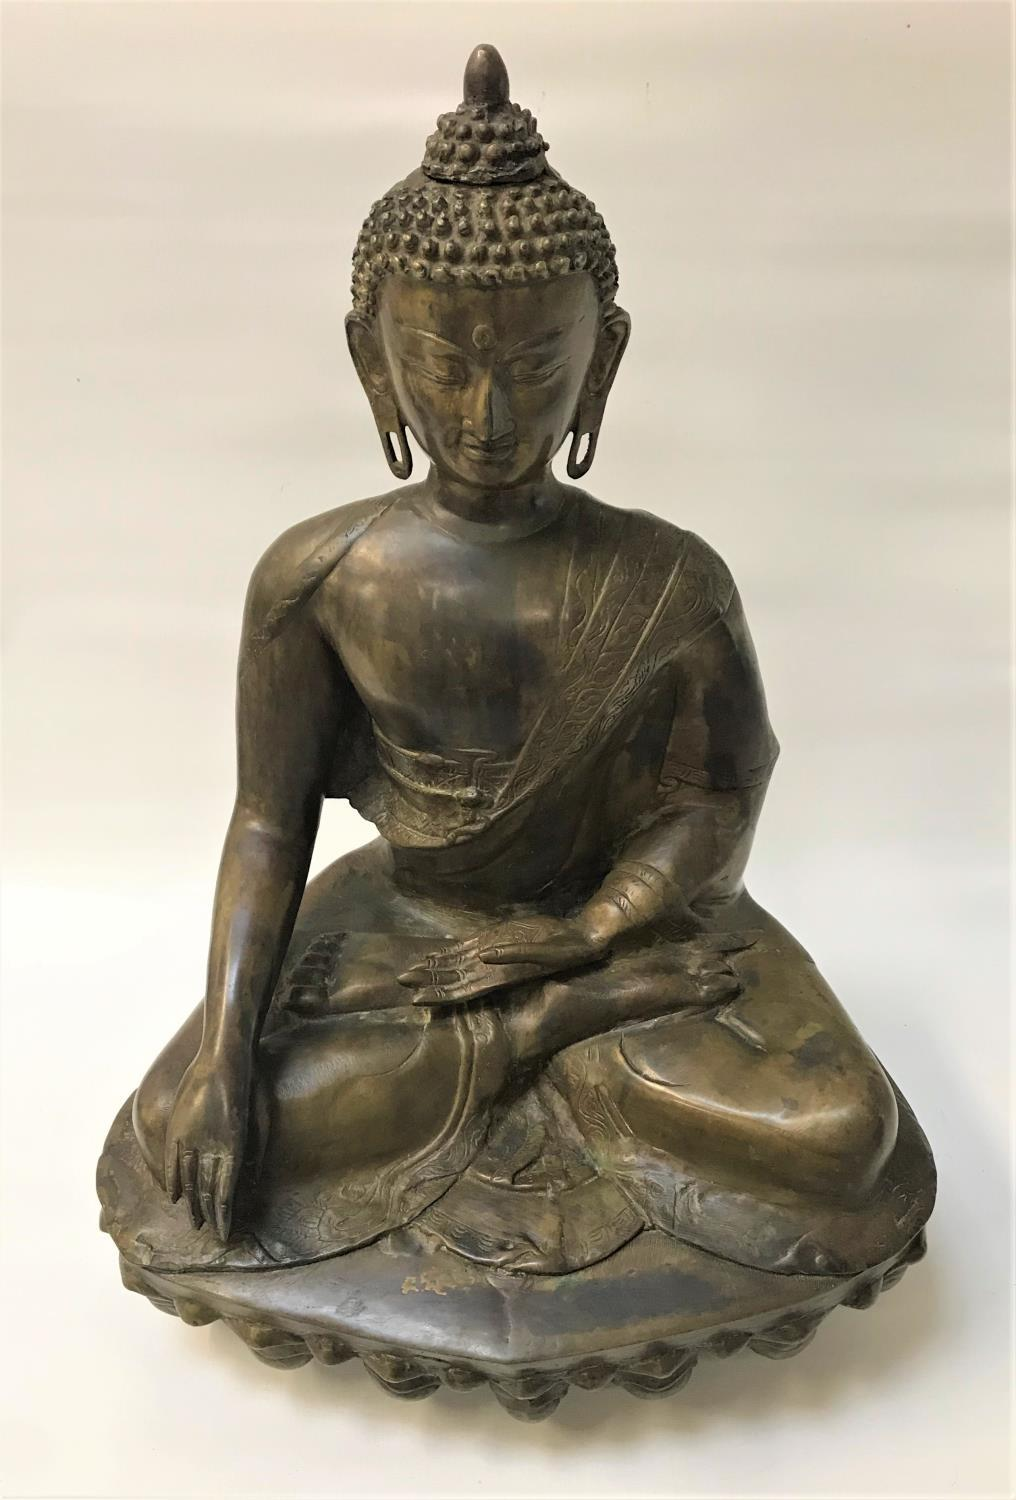 Lot 293 - 19TH CENTURY BRONZE BUDDHA SHAKYAMUNI seated with legs crossed with one hand across his lap with the